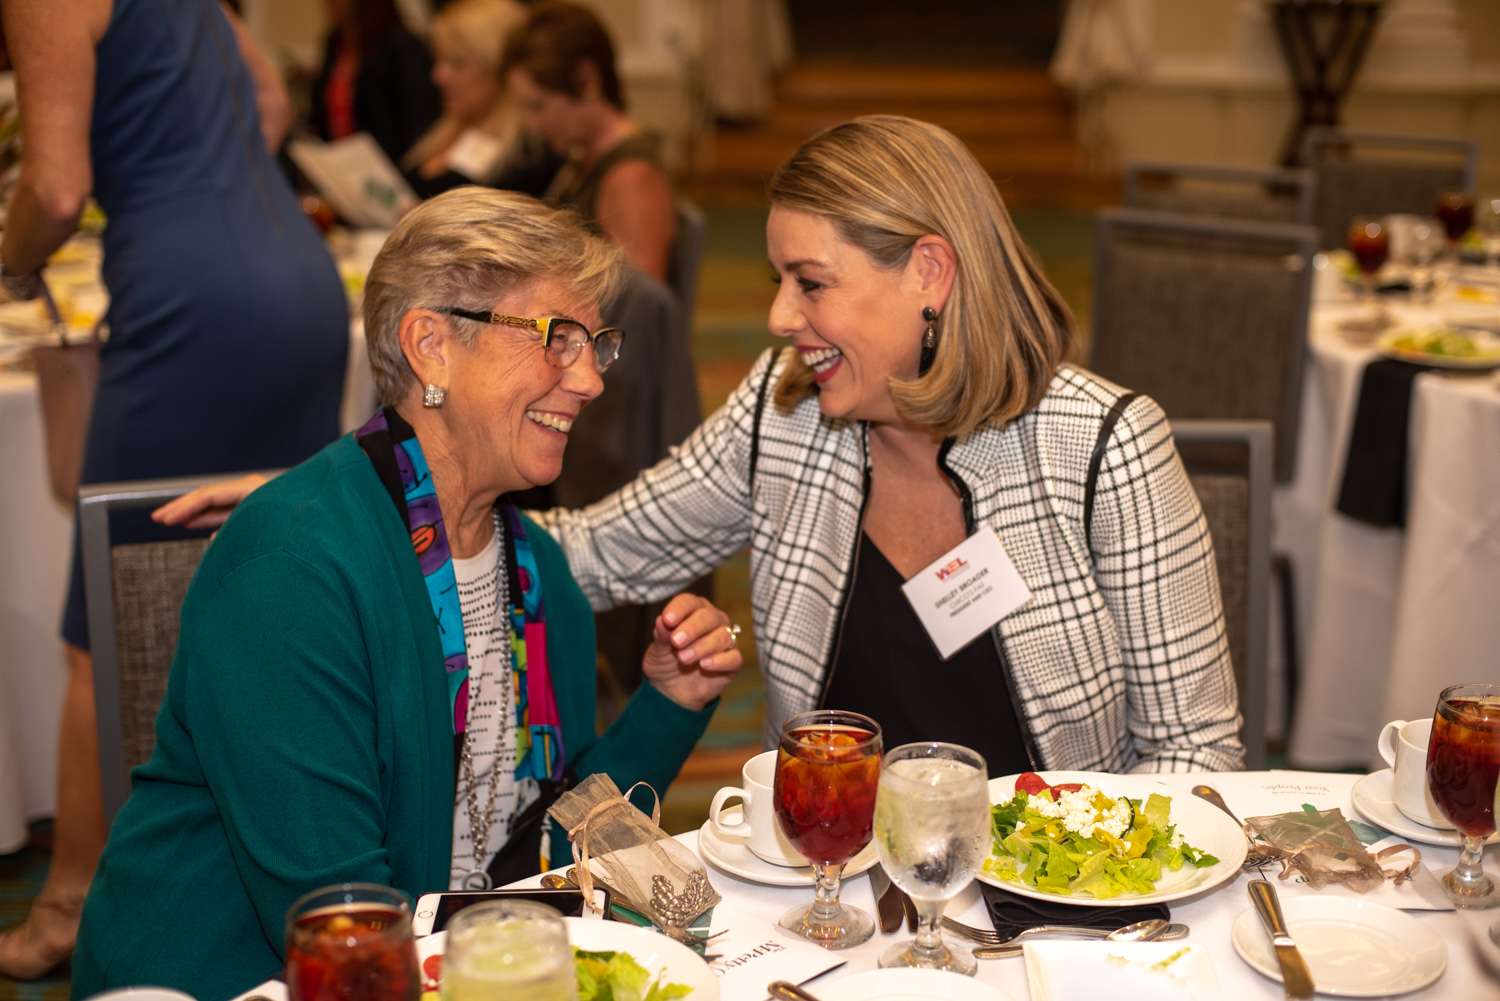 Marty Petty and Shelley Broader conversing at a luncheon